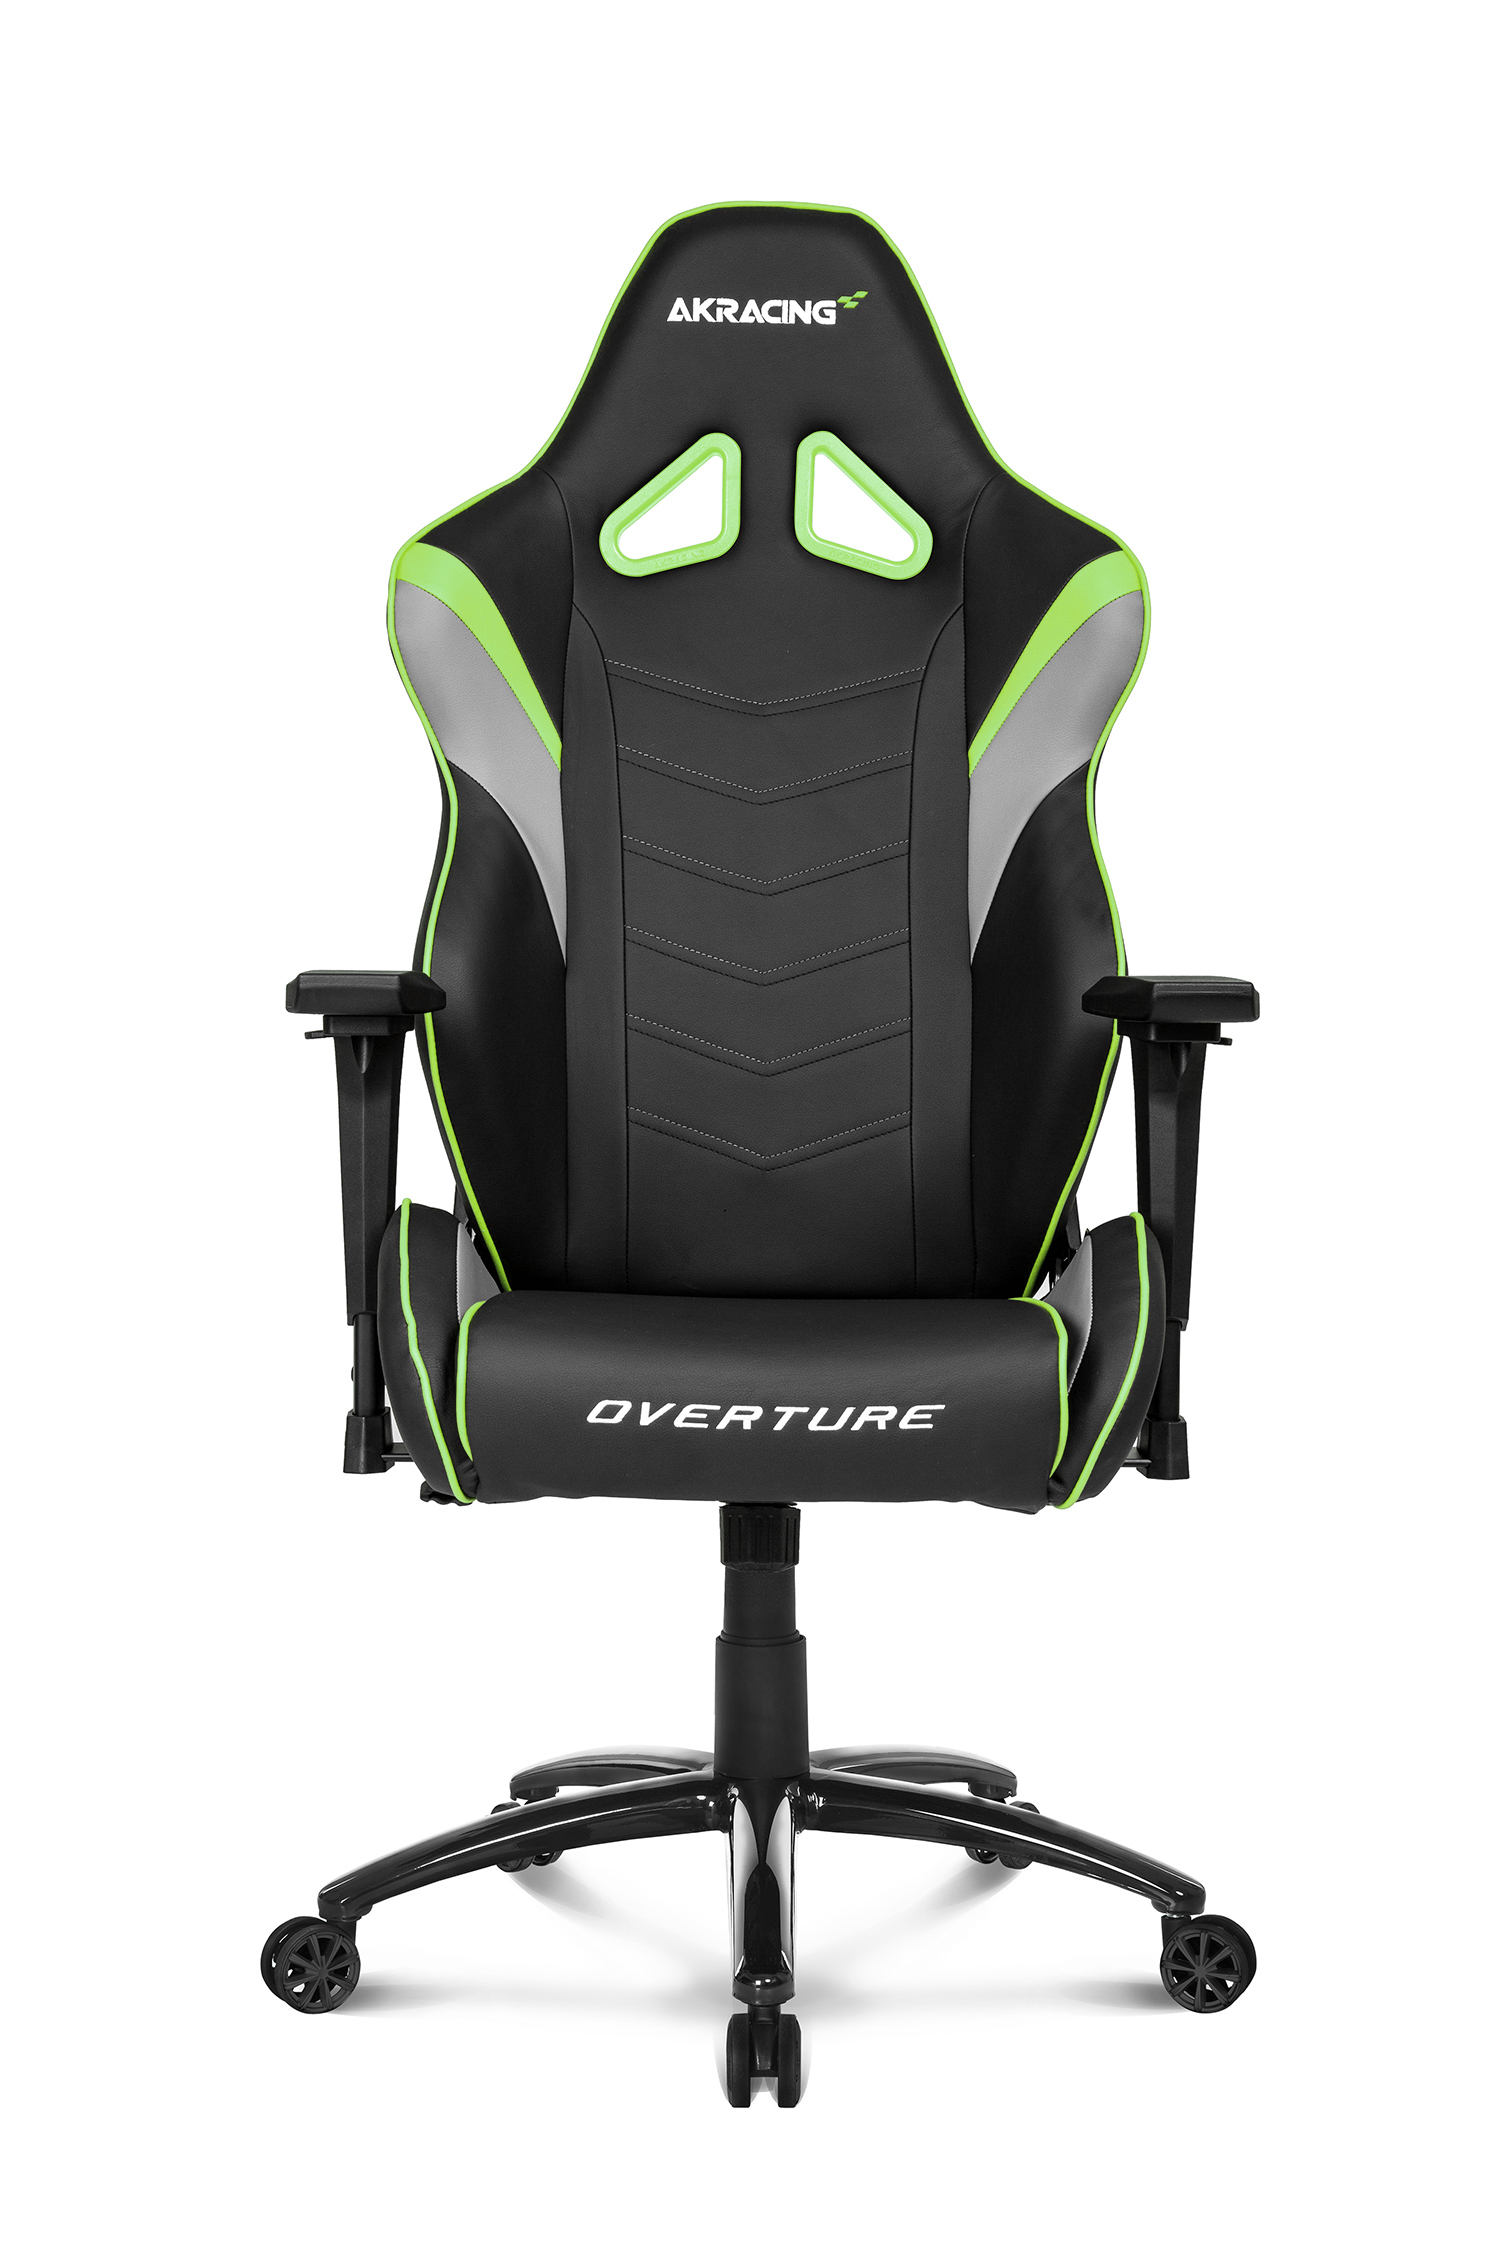 Scaun Gaming AKRacing Overture Verde